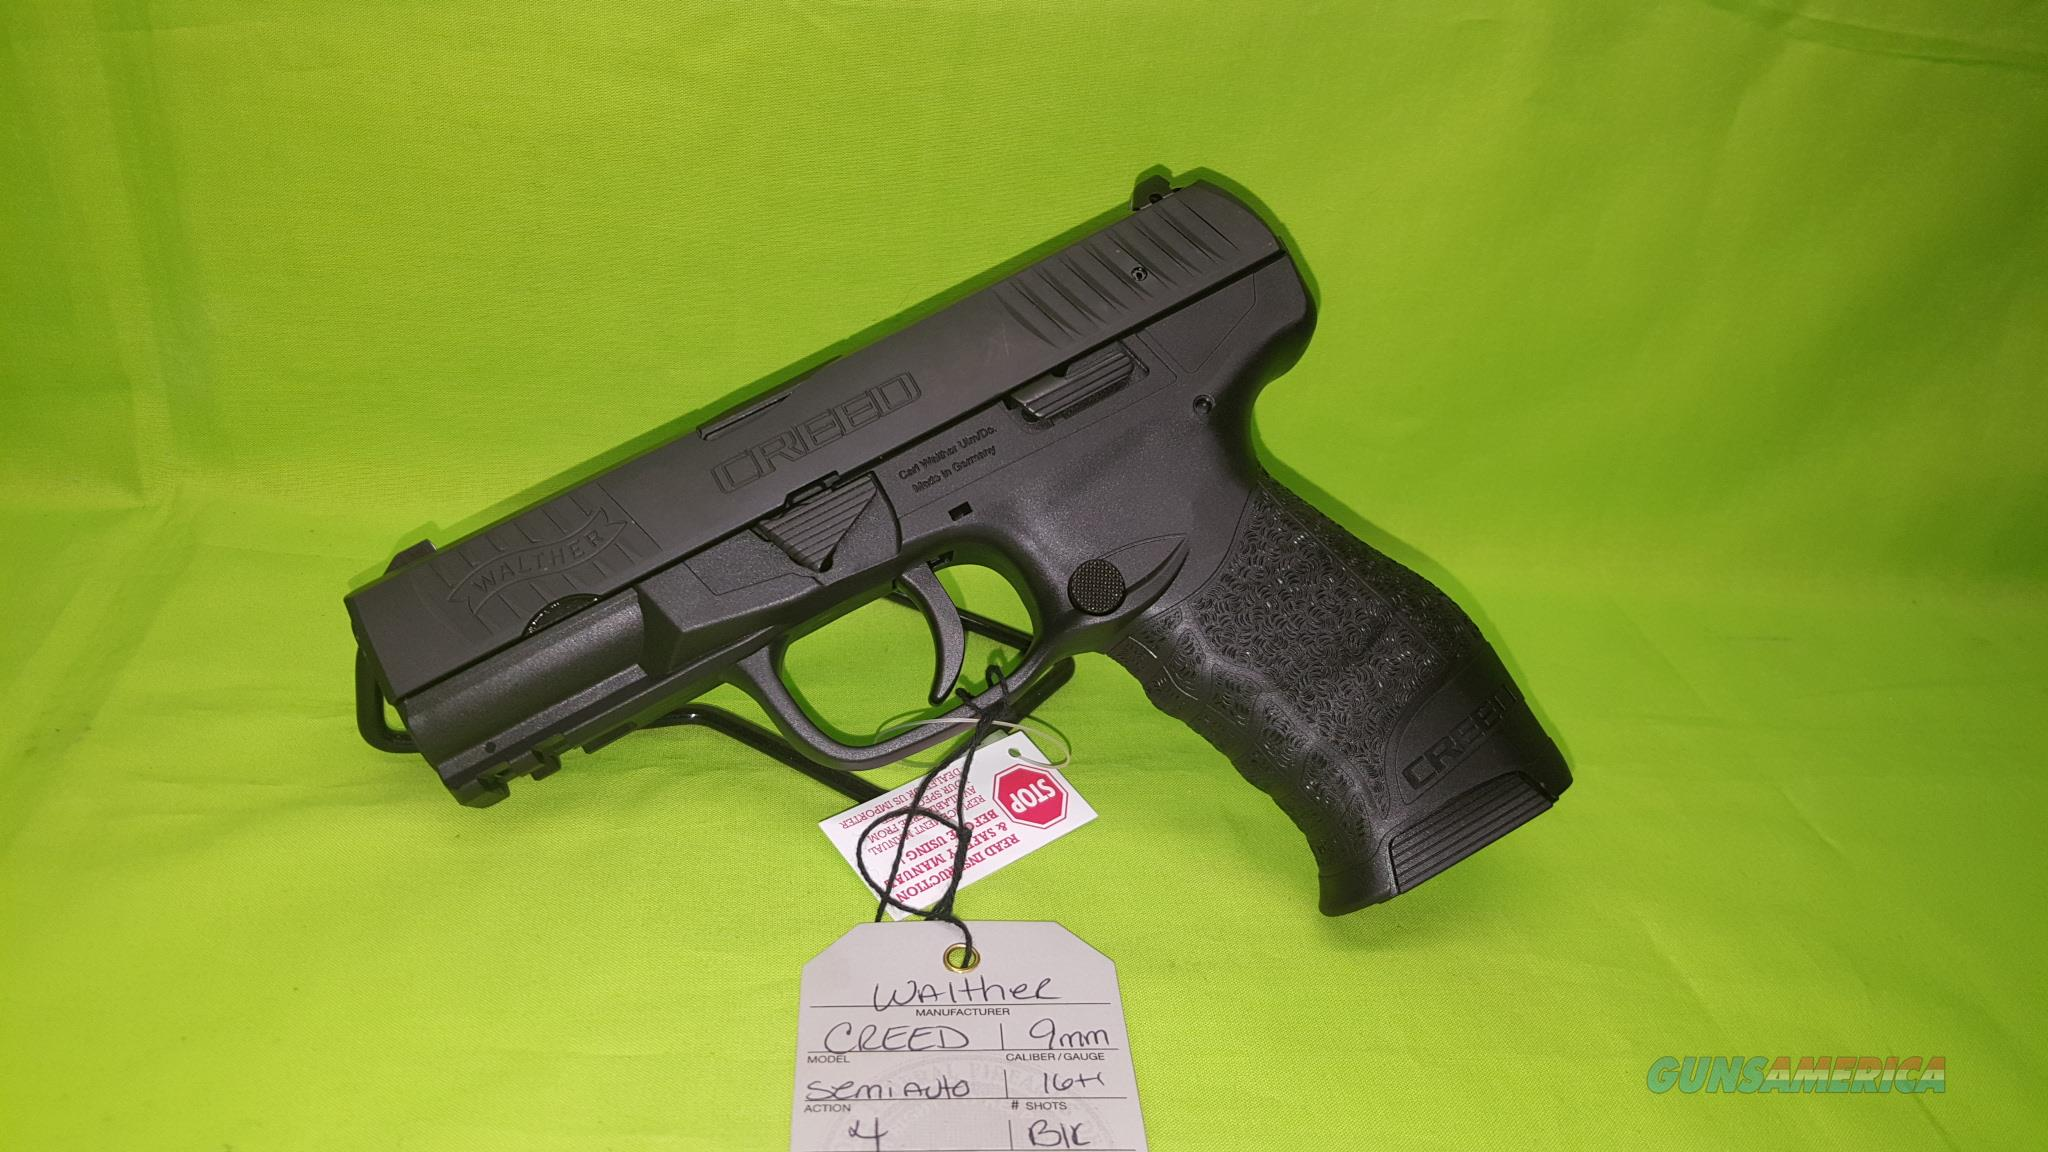 "WALTHER CREED 9MM 9 MM 16+1 4"" NEW IN BOX   Guns > Pistols > Walther Pistols > Post WWII > P99/PPQ"